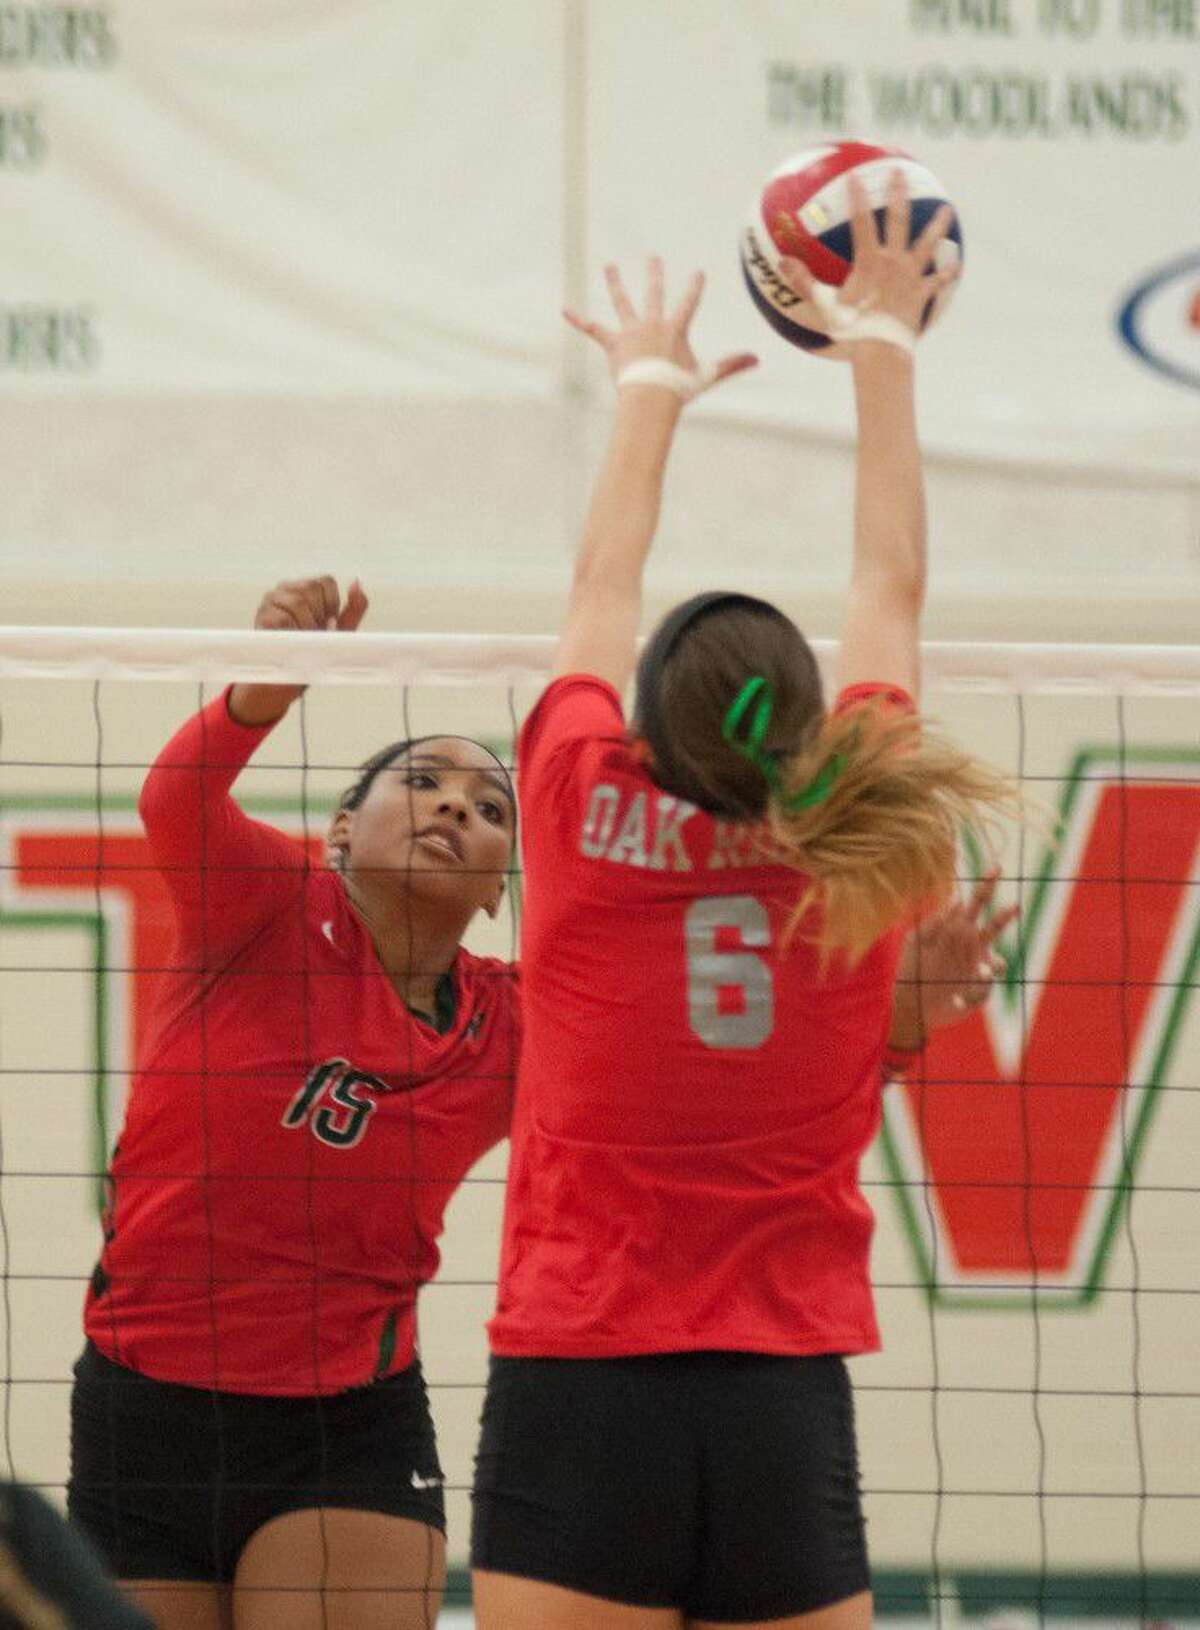 Oak Ridge's Molly Russell gets a block against The Woodlands' Sydney Jackson on Friday at The Woodlands High School.